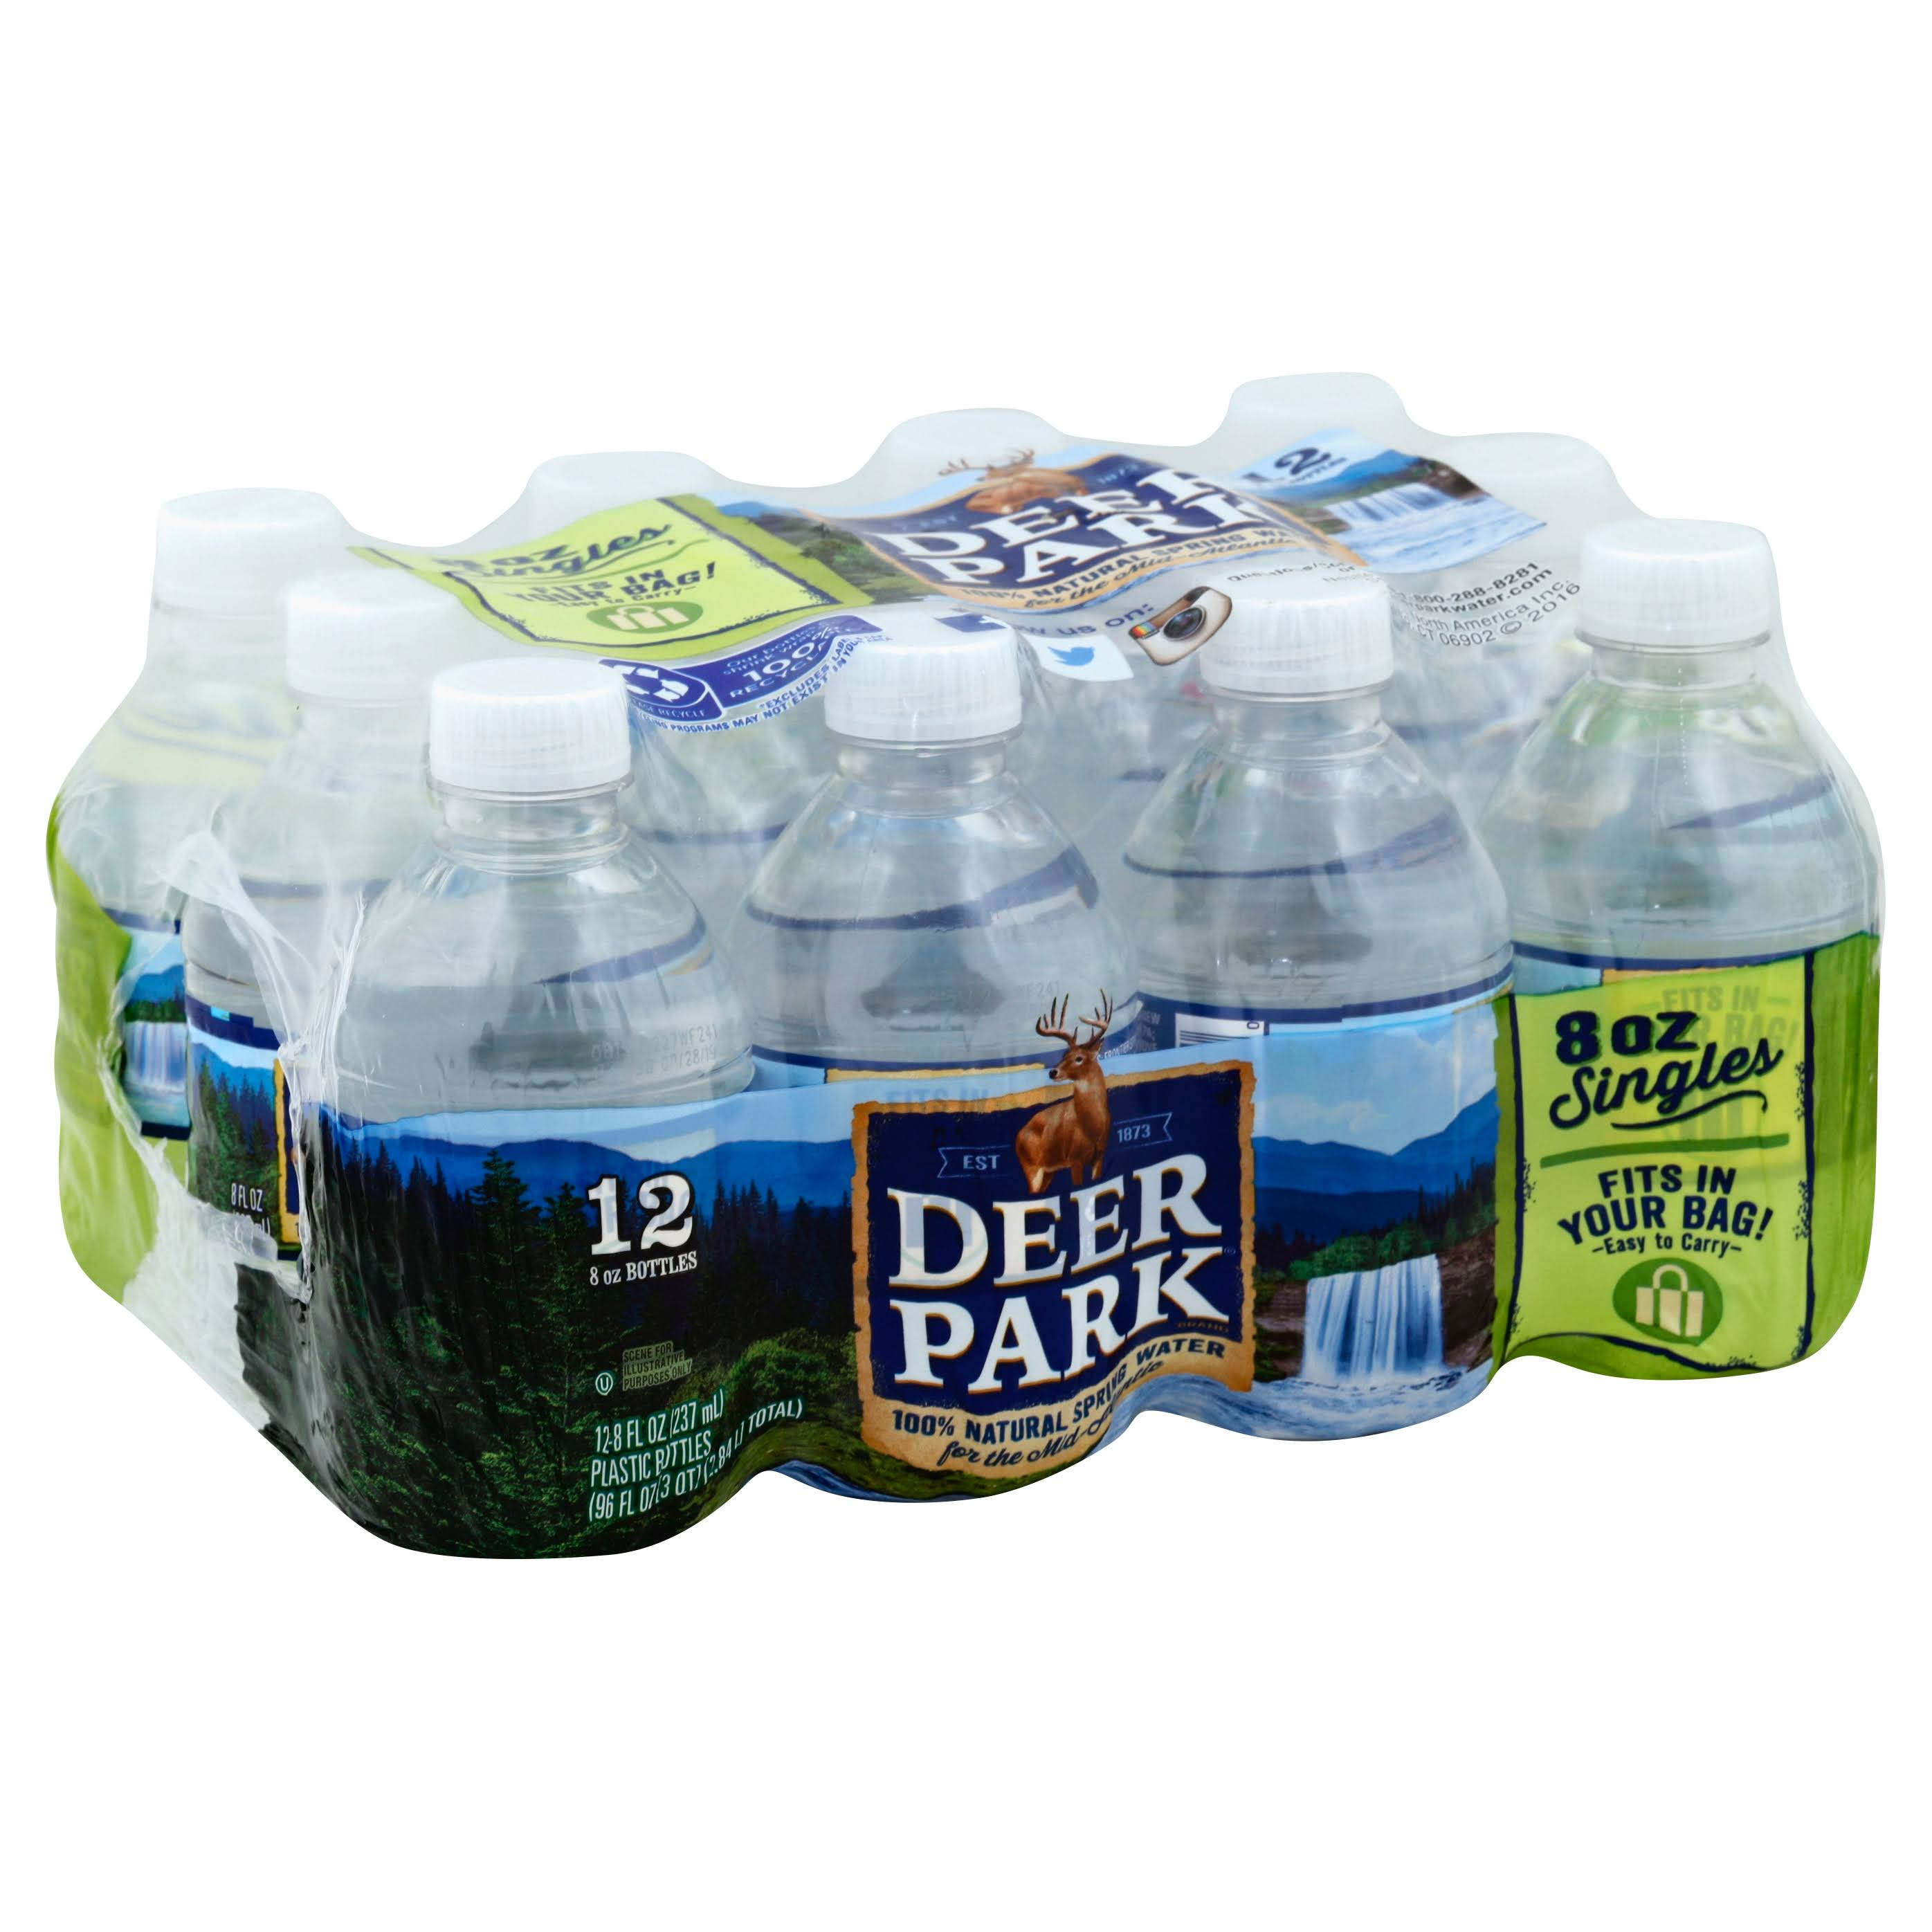 Deer Park Brand 100% Natural Spring Water - 12 Bottles, 2.8l